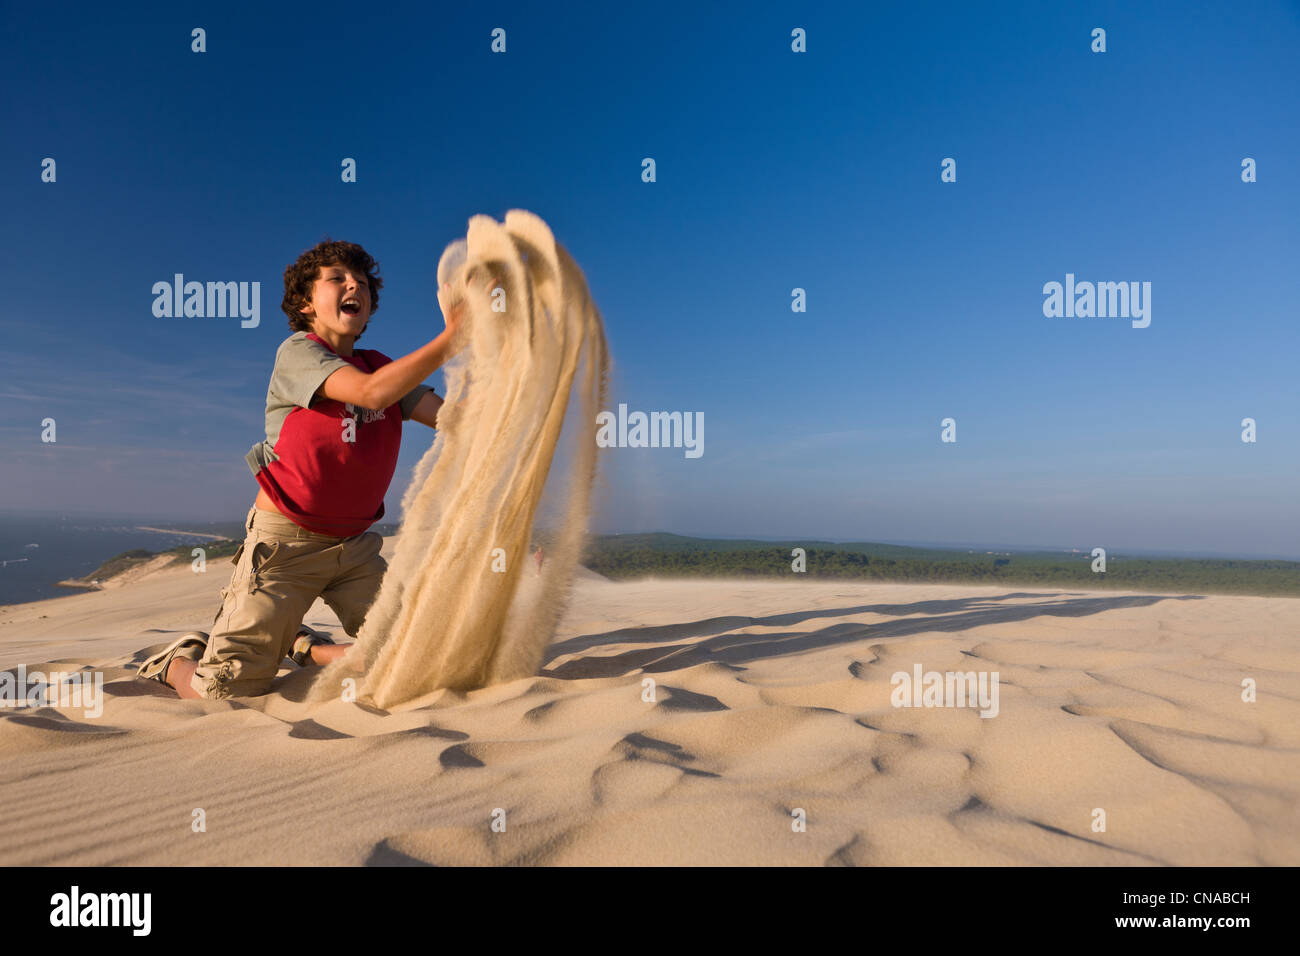 France, Gironde, Bassin d'Arcachon, La Teste de Buch, Dune du Pyla (the Great Dune of Pyla), playing with sand - Stock Image